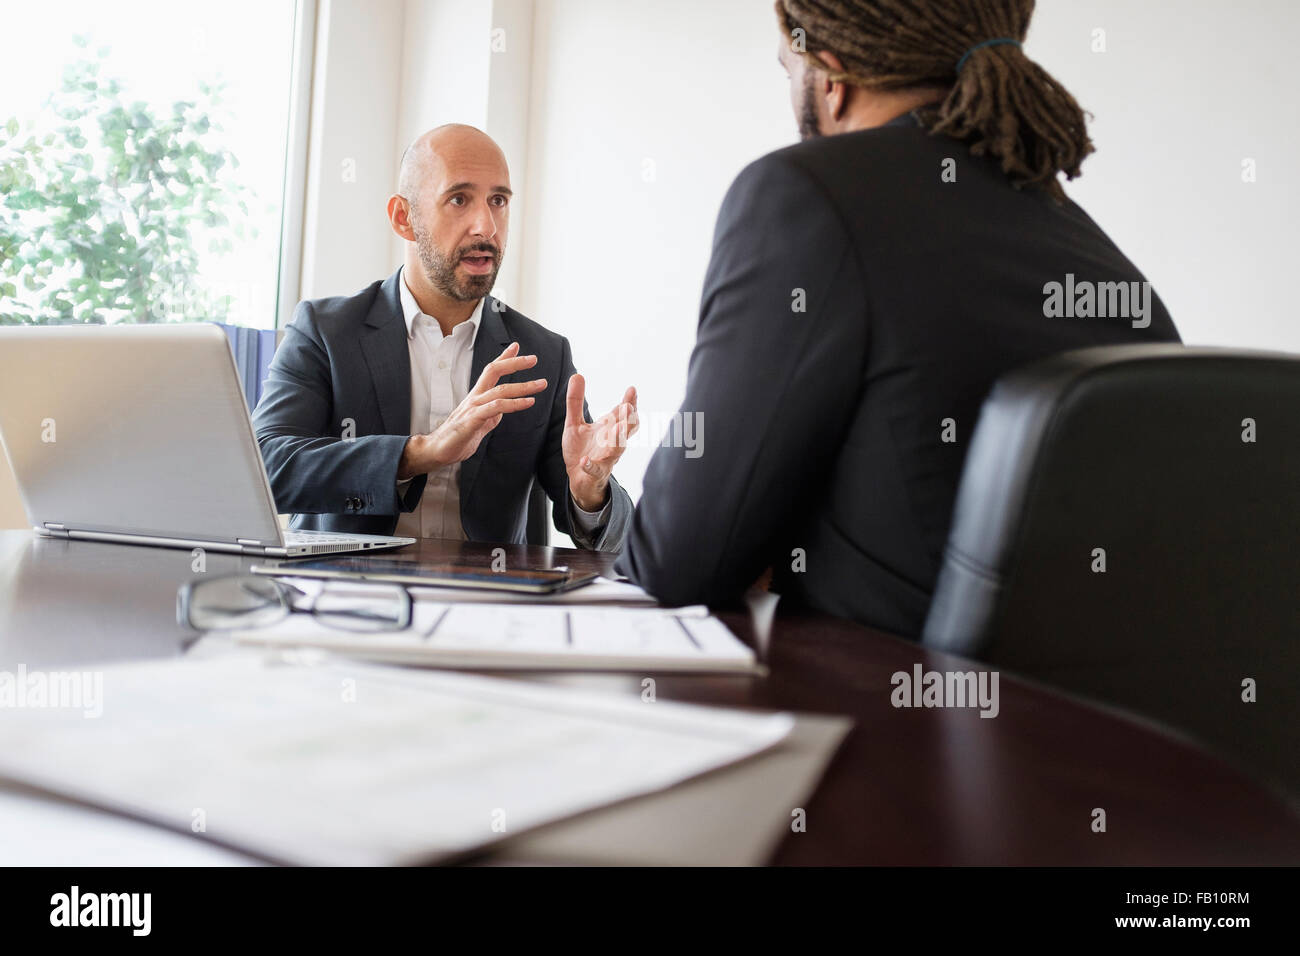 Two businessmen having discussion at desk in office - Stock Image